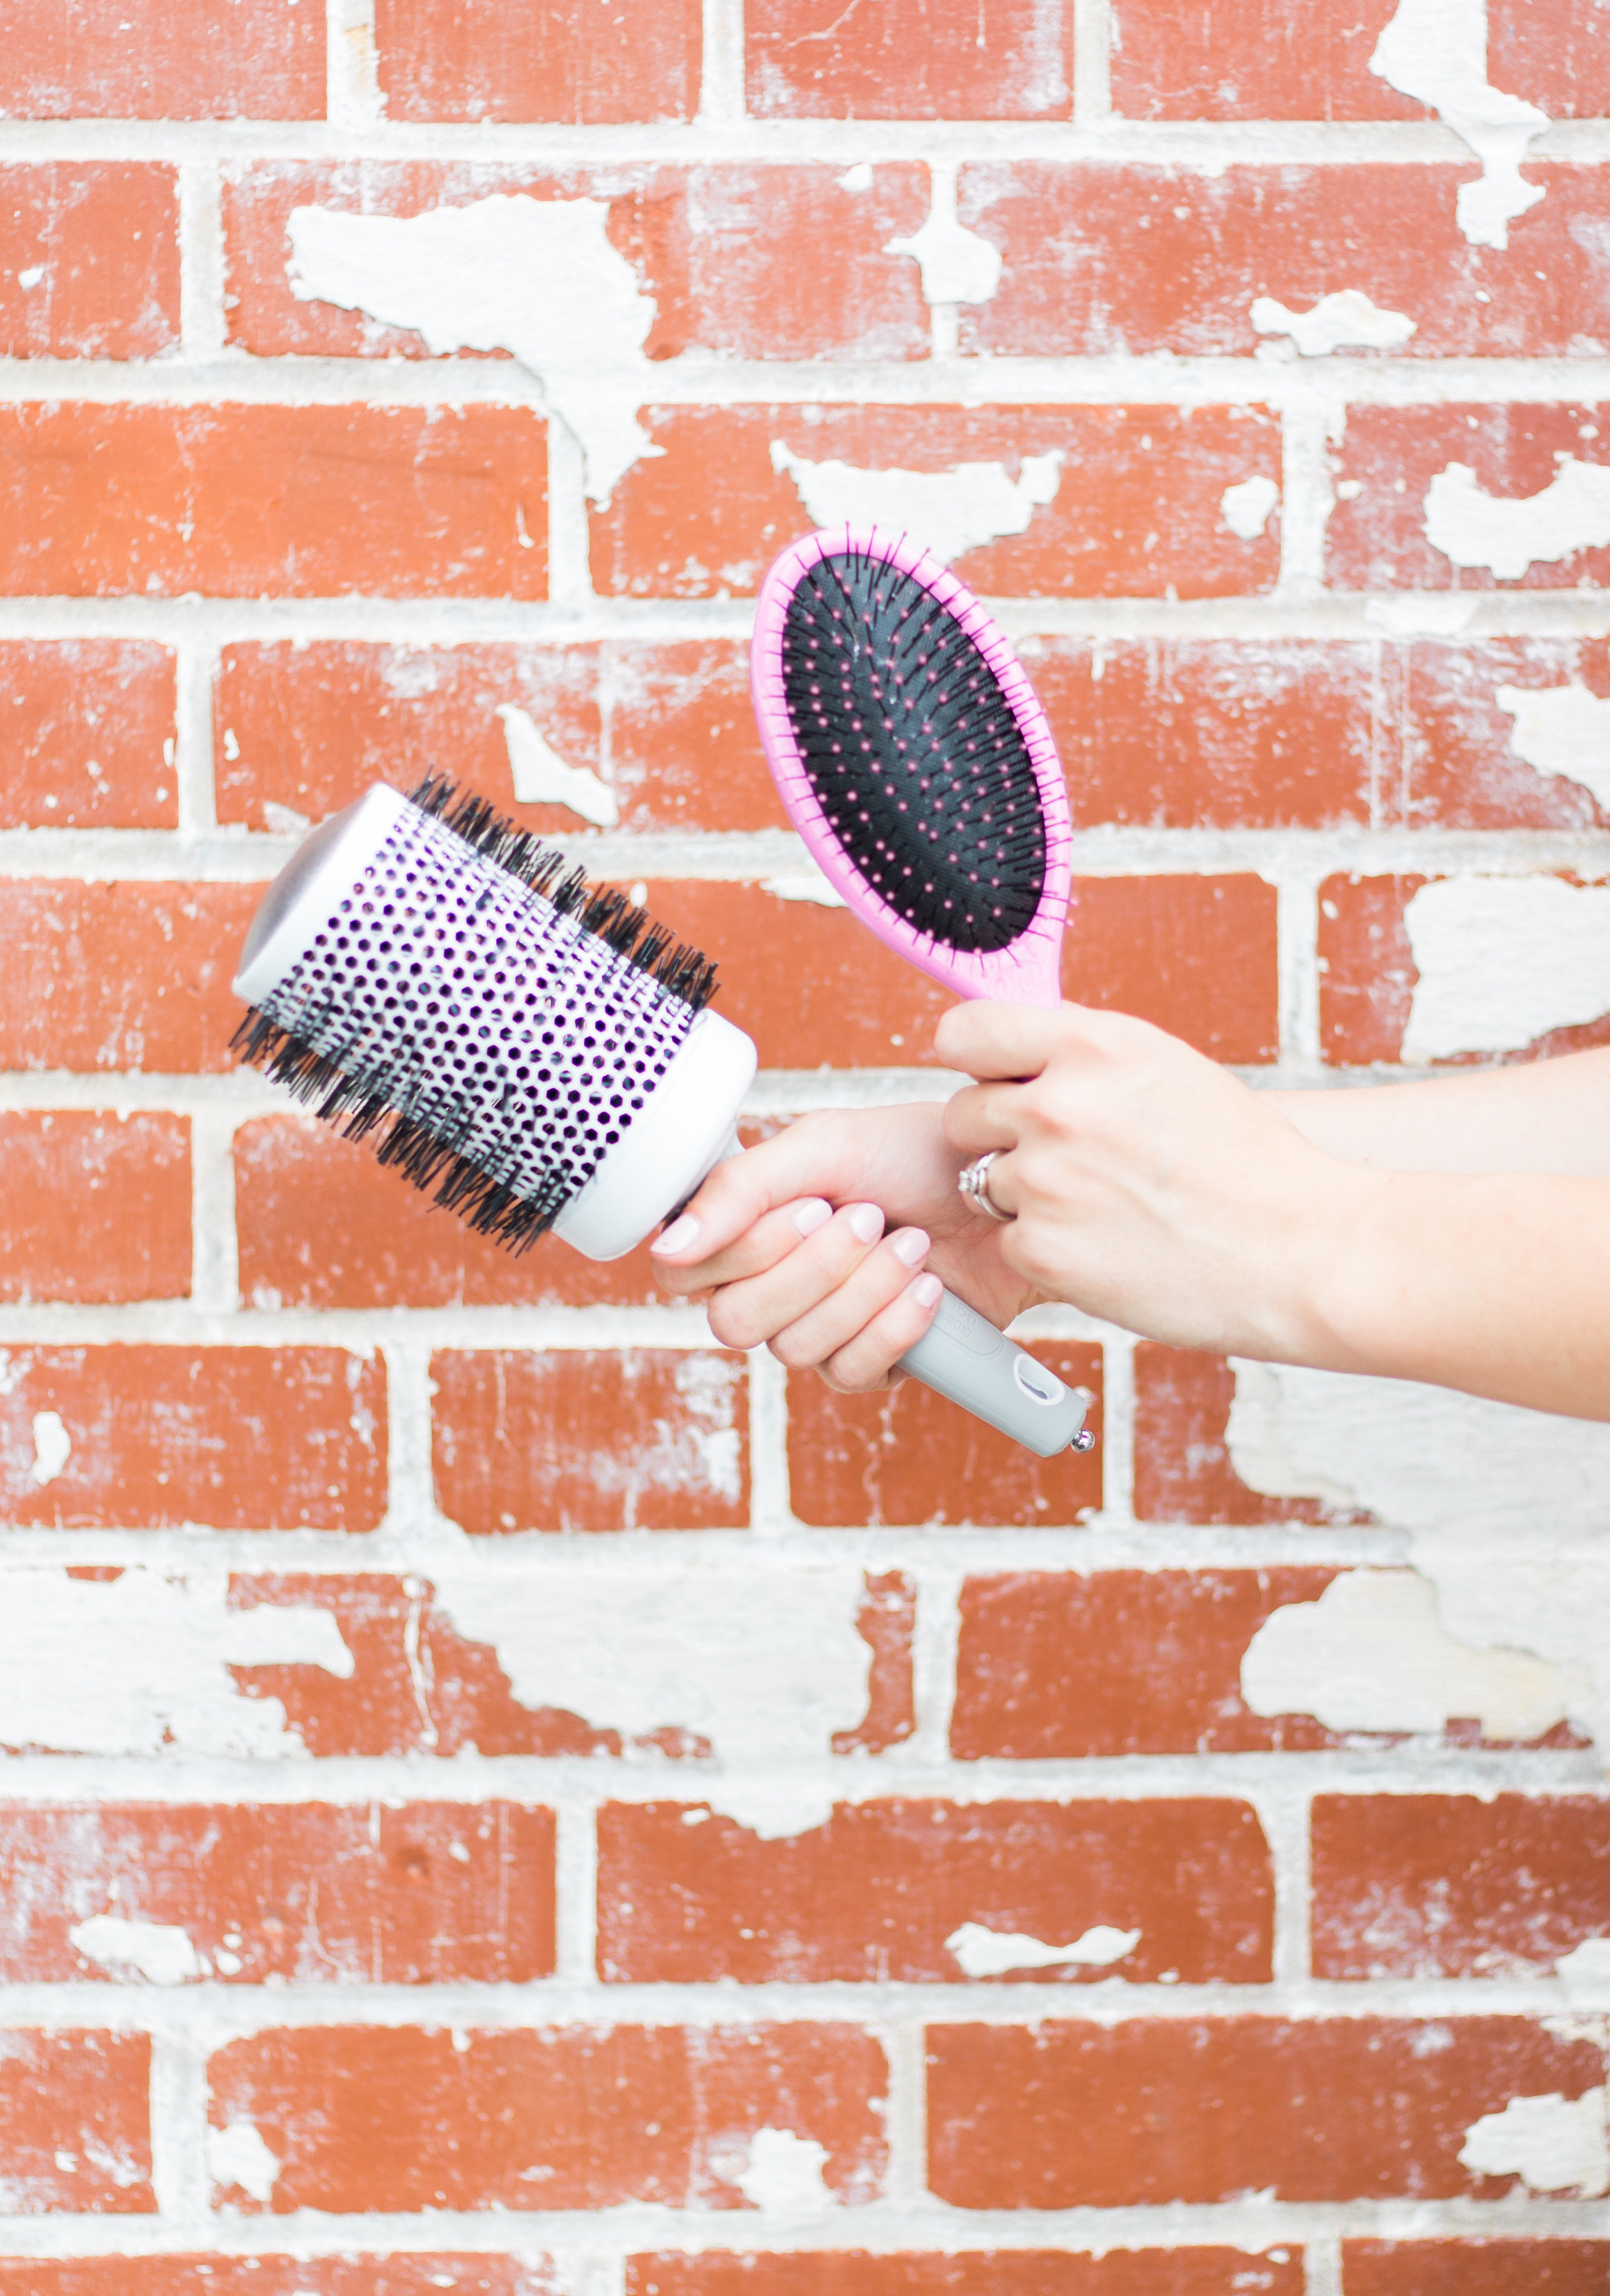 The Two Hair-Saving Brushes You Never Knew You Needed (Seriously, this beauty secret is life-changing, and stylist-approved. Click through for your two new secret weapons!)